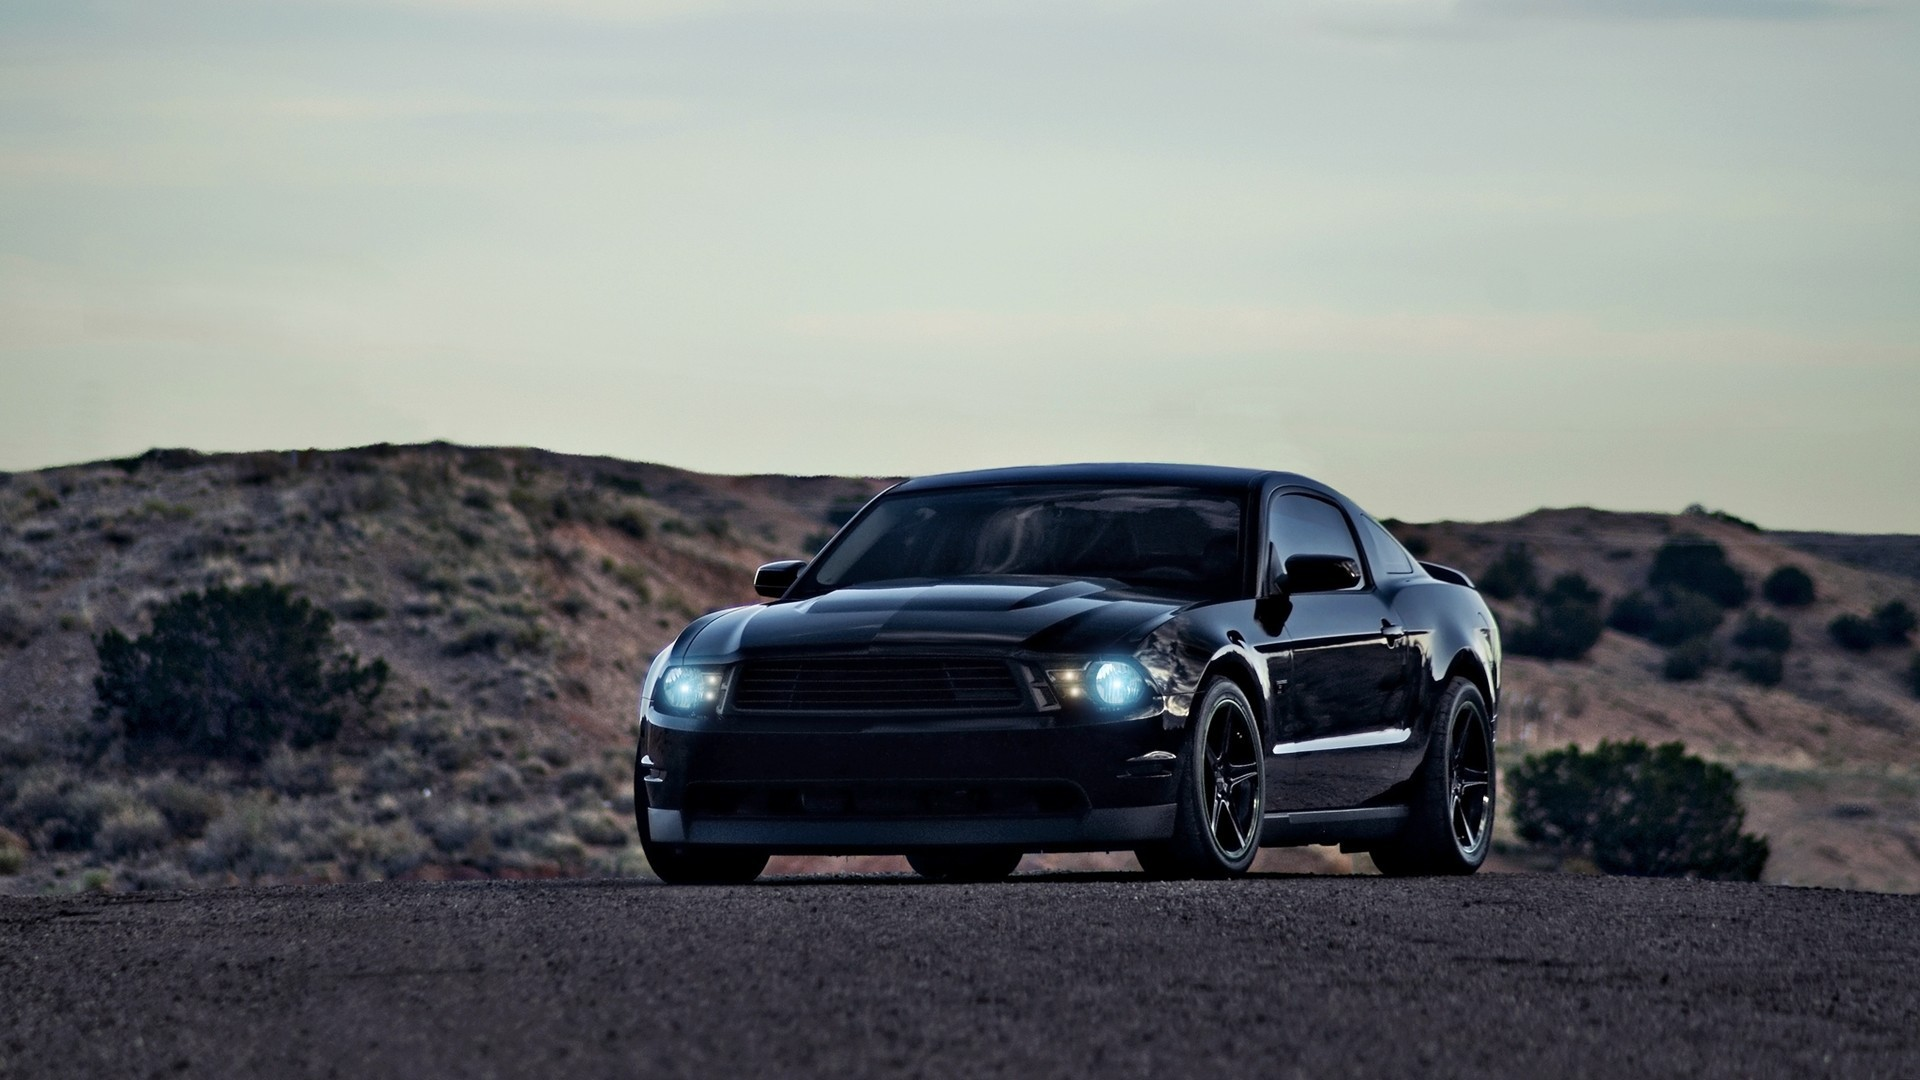 Ford Mustang GT500 black wallpapers and images   wallpapers pictures 1920x1080